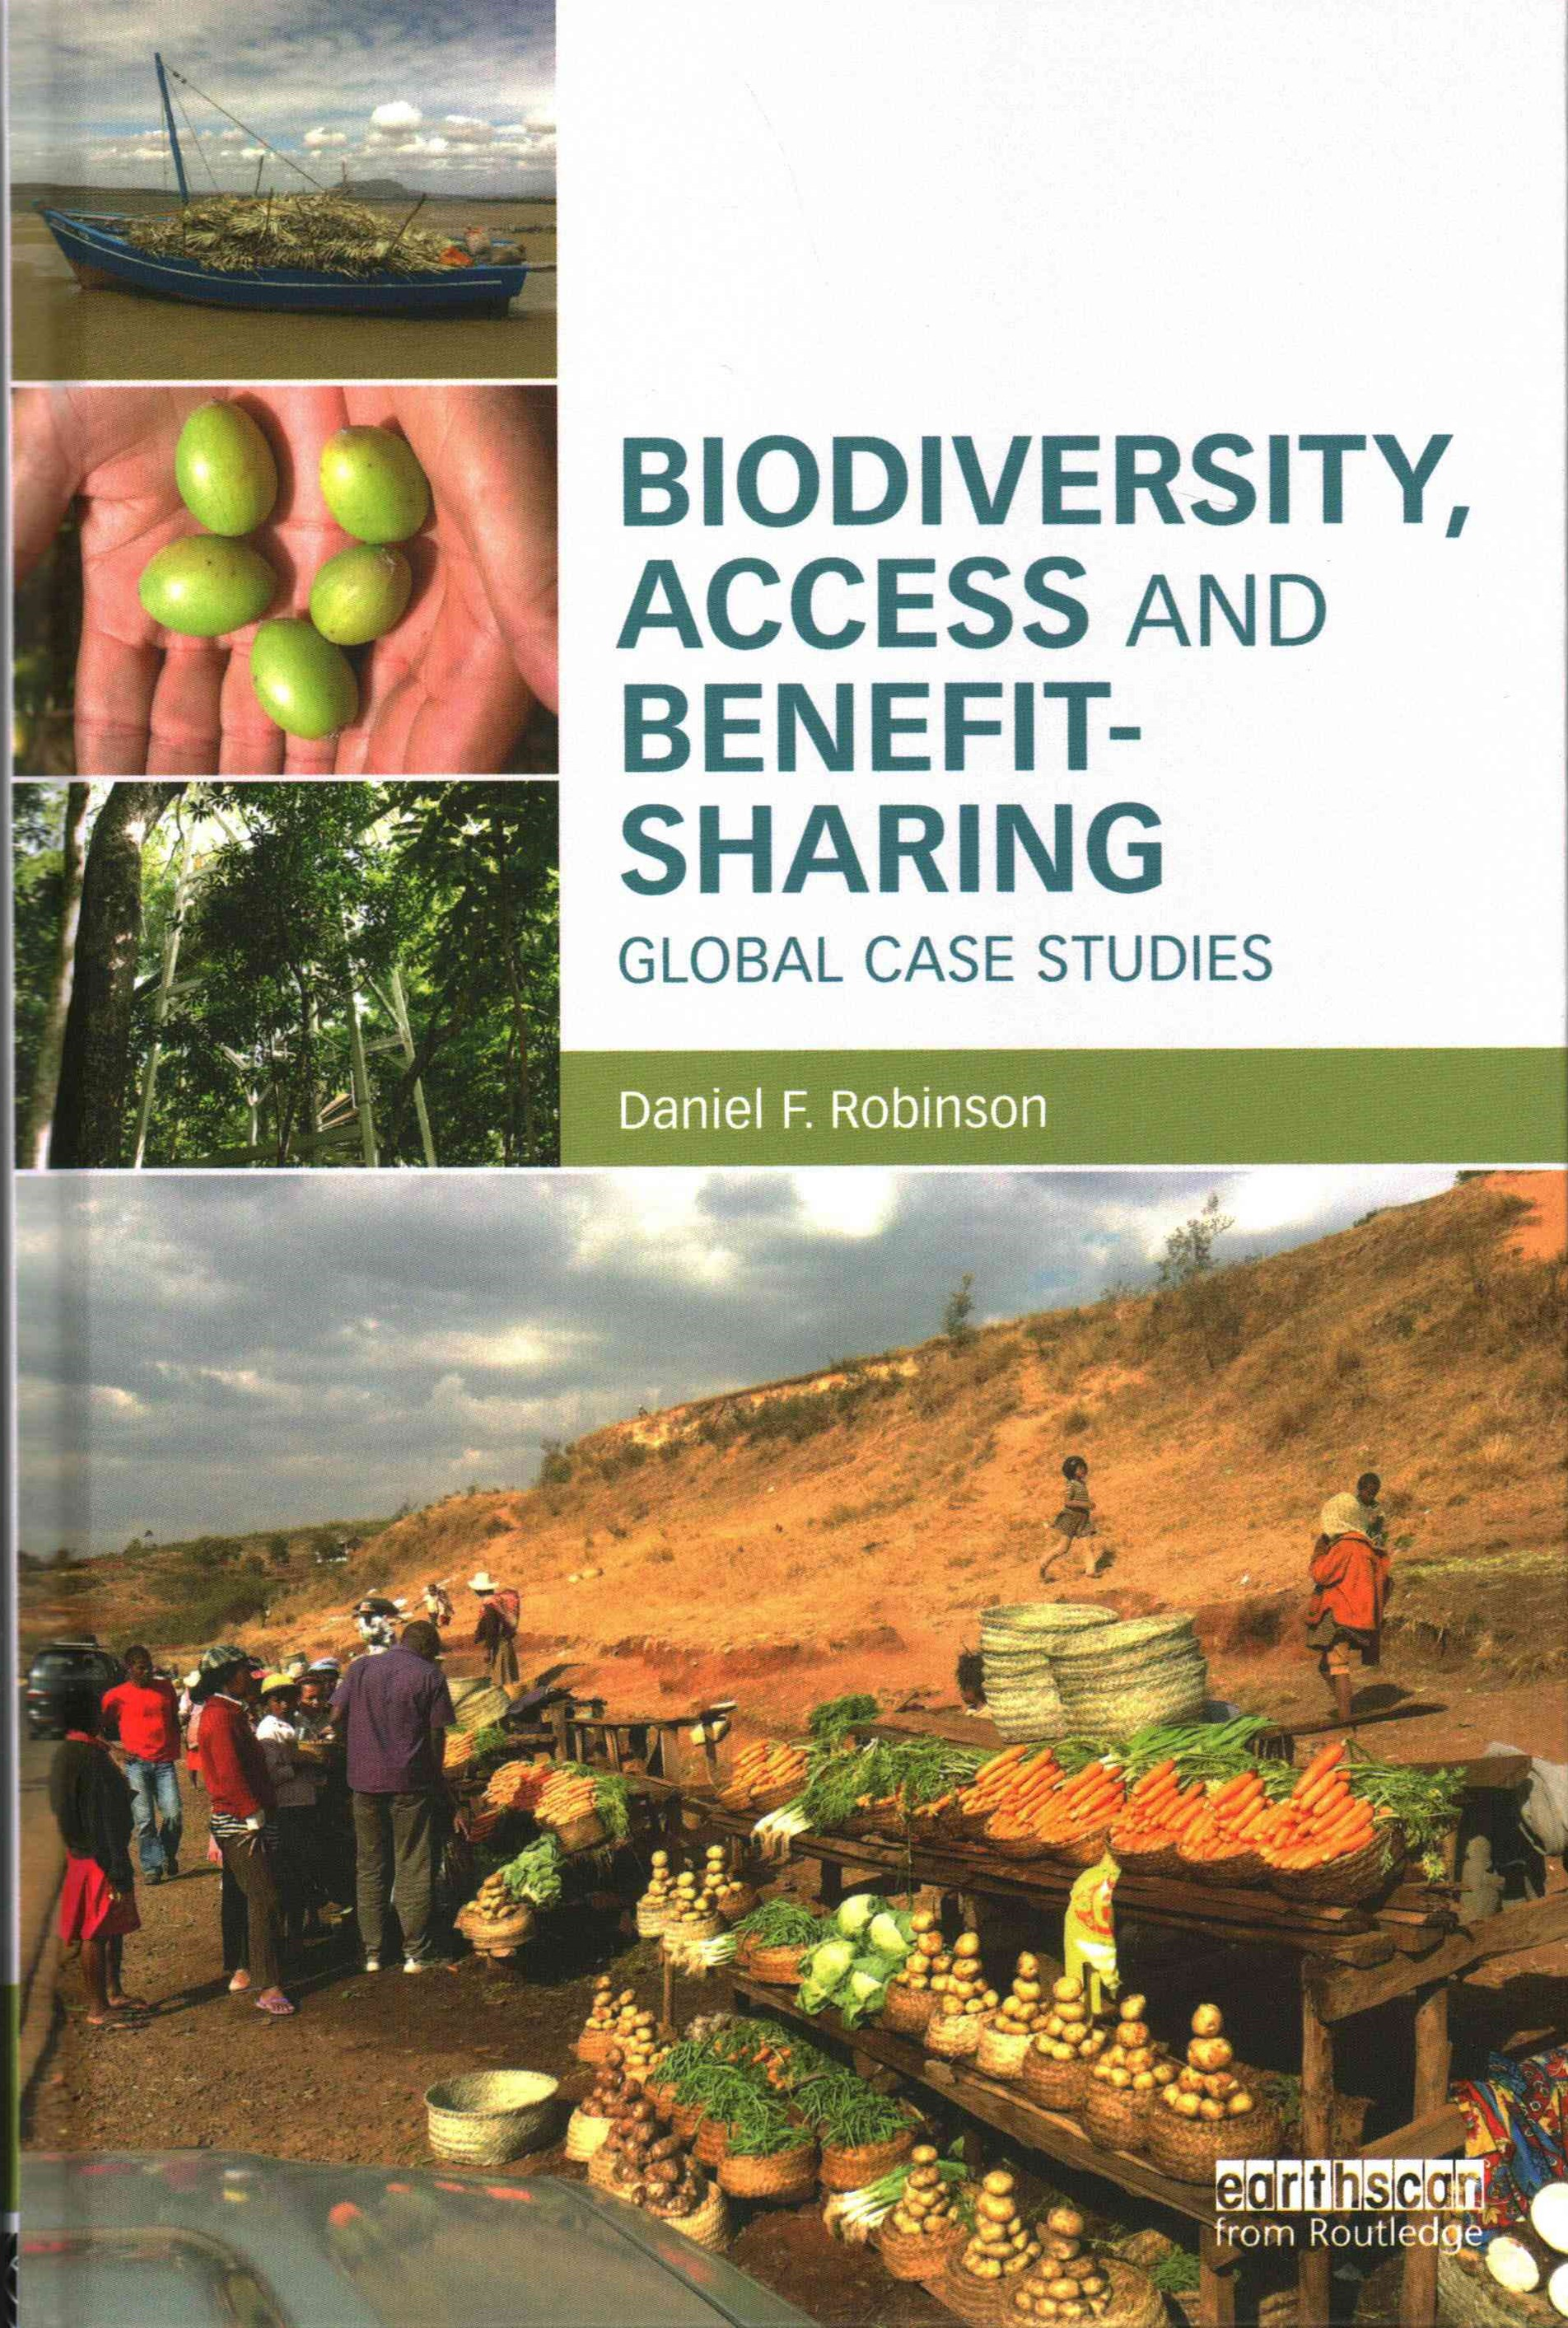 Biodiversity, Access and Benefit-Sharing